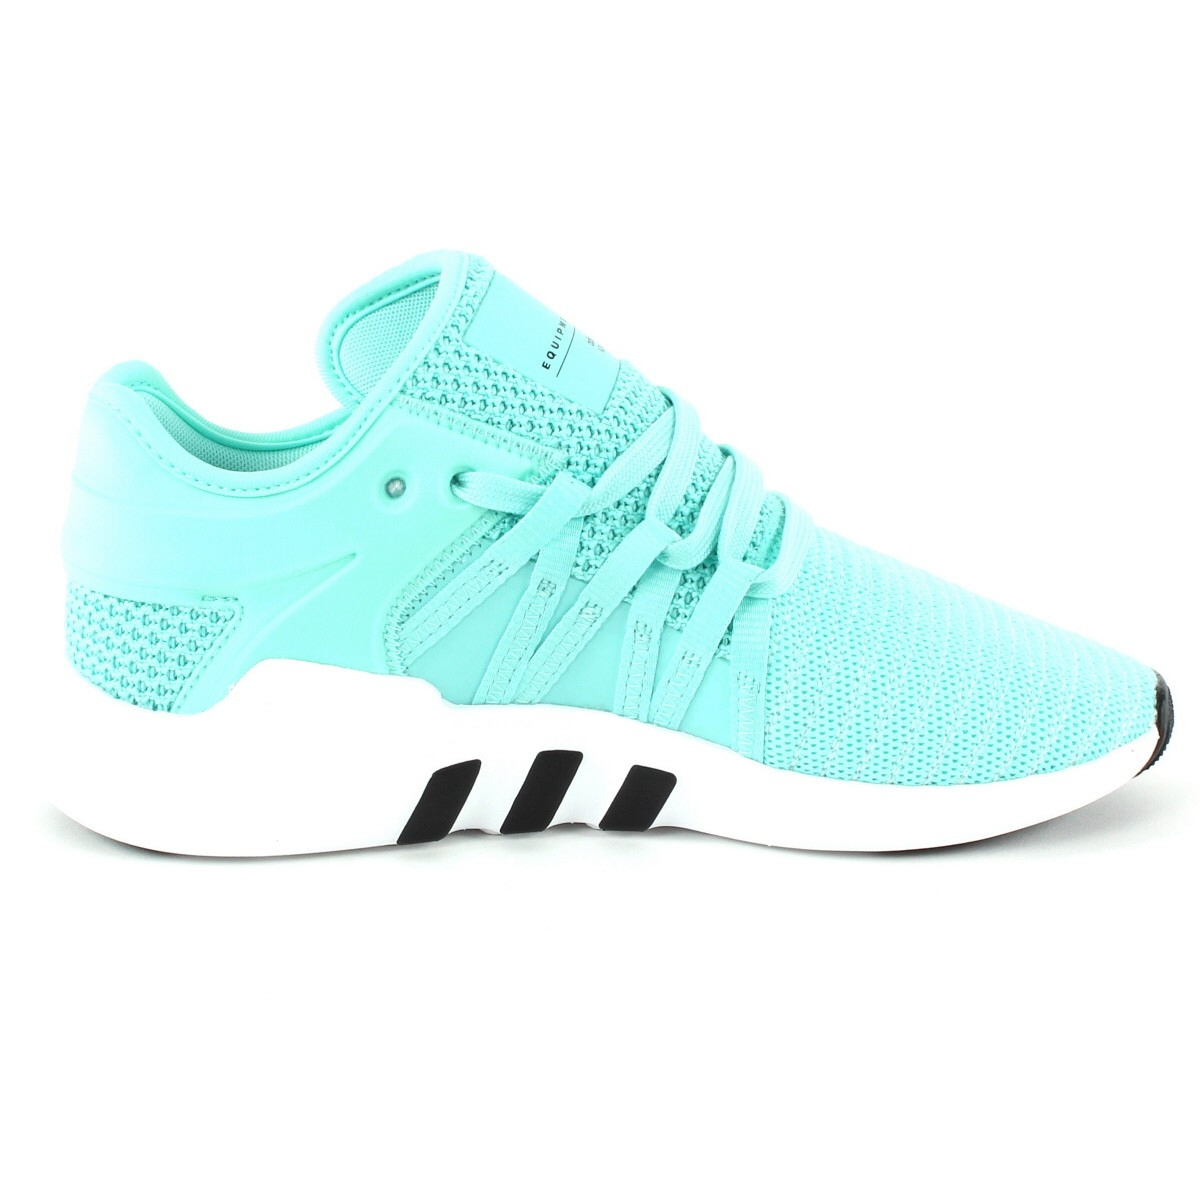 half off bb495 5b3ba ... Basket Adidas Originals EQT Racing ADV Women